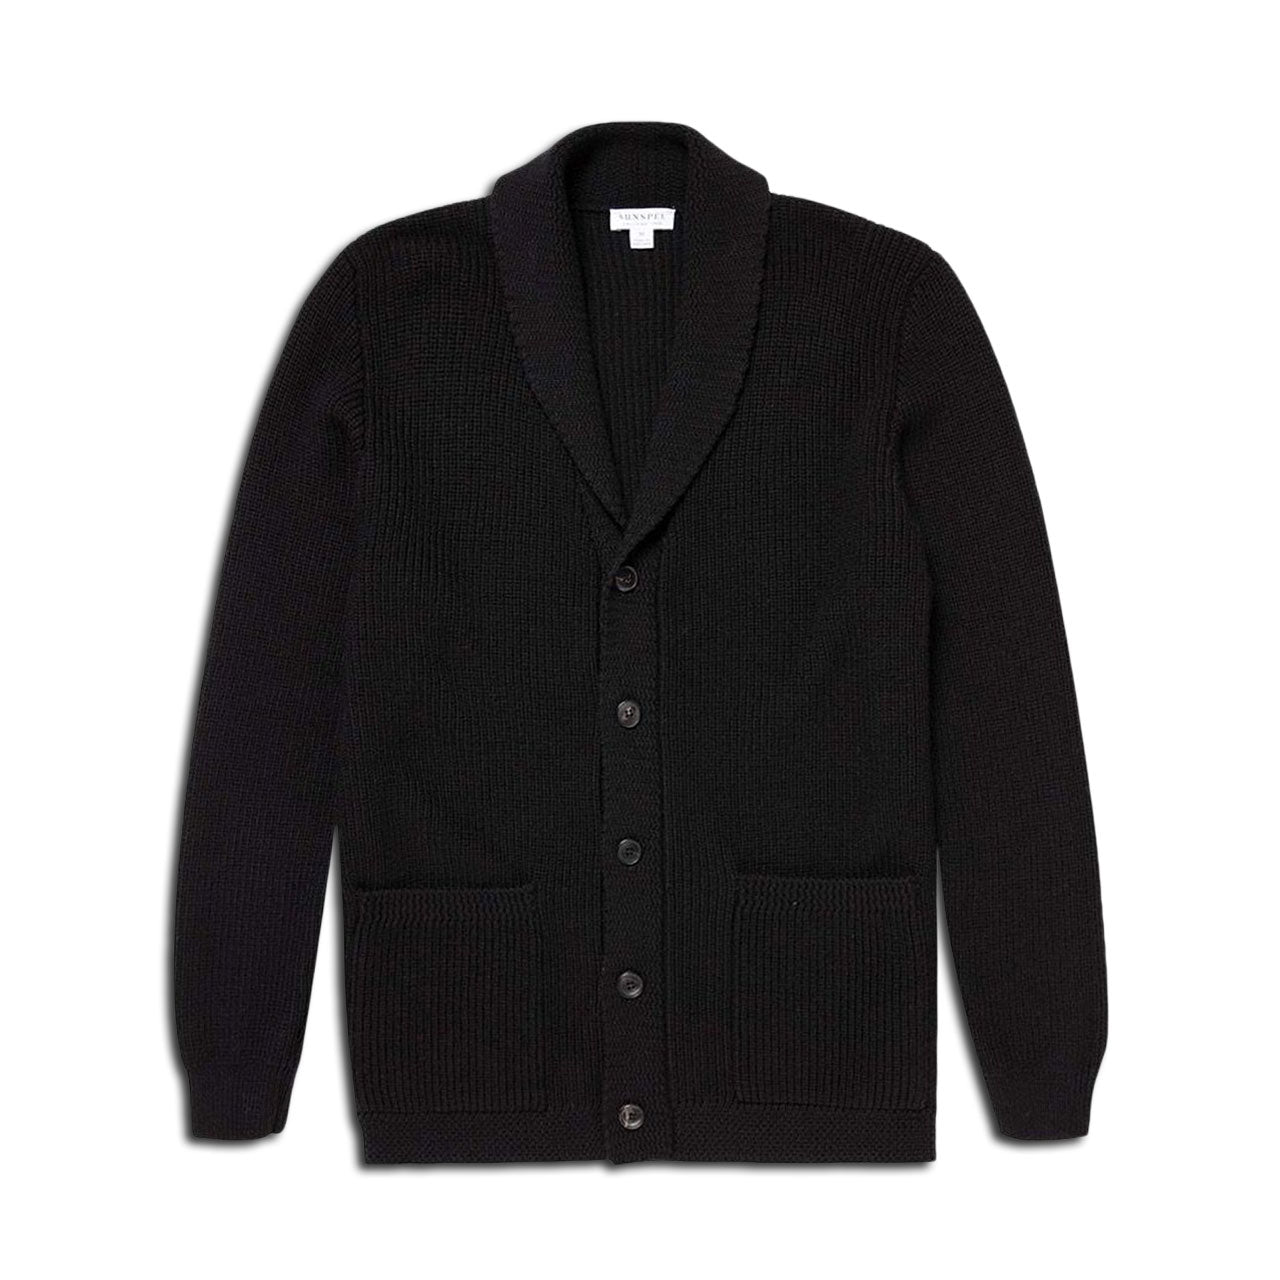 Sunspel x Ian Fleming Shawl Cardigan Sweater